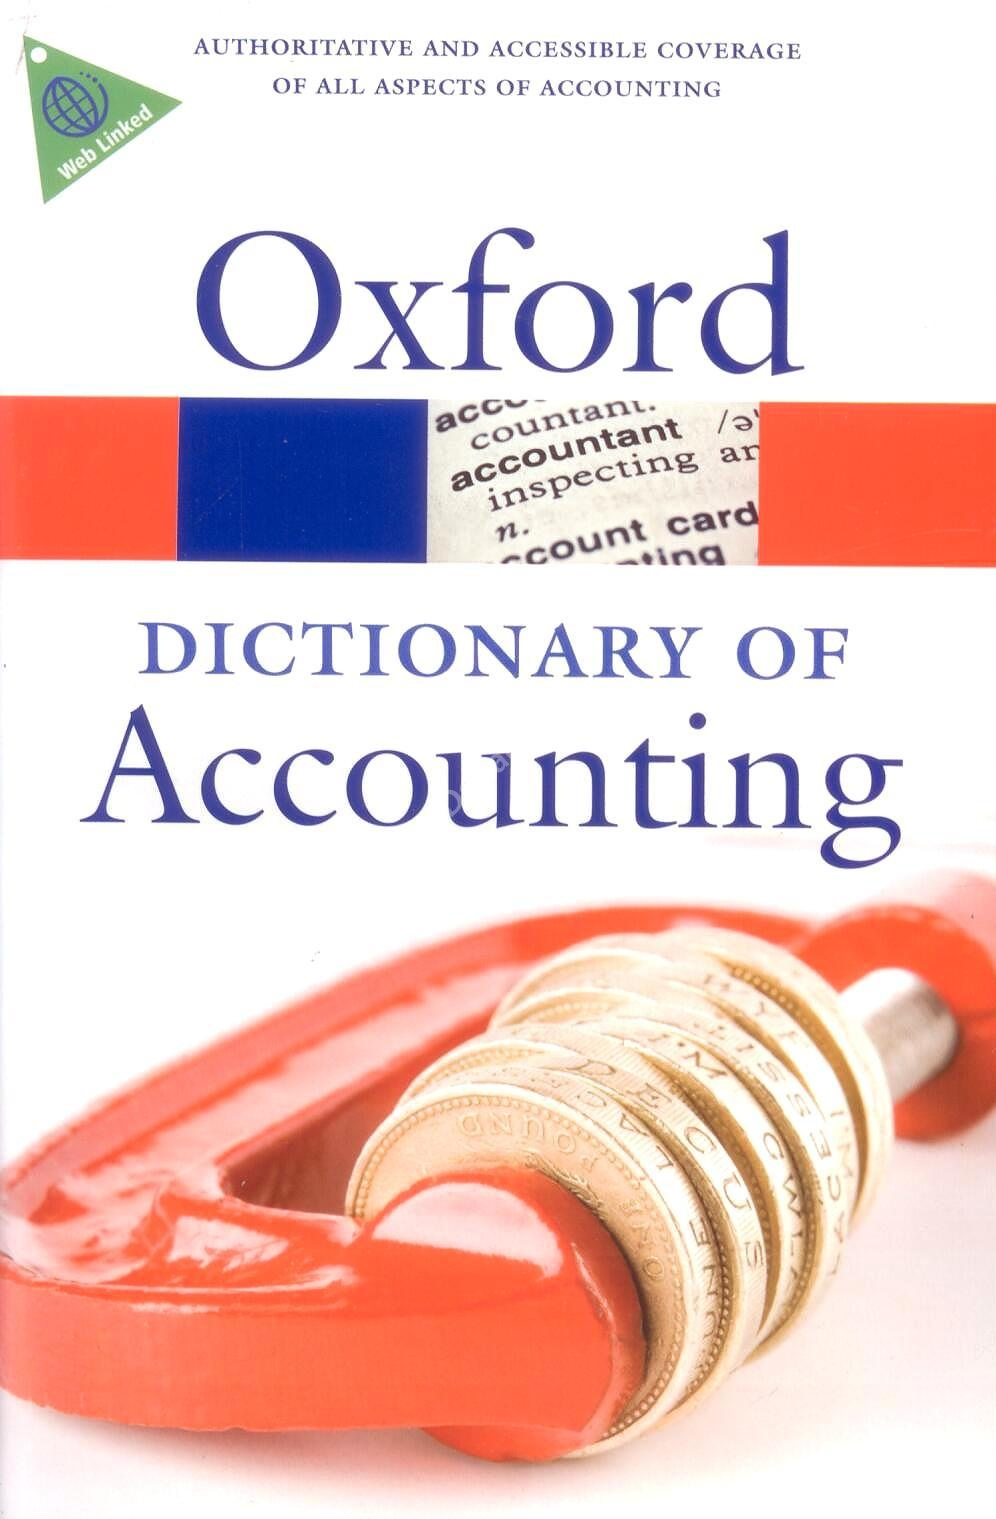 Oxford Dictionary of Accounting (4th Edition)